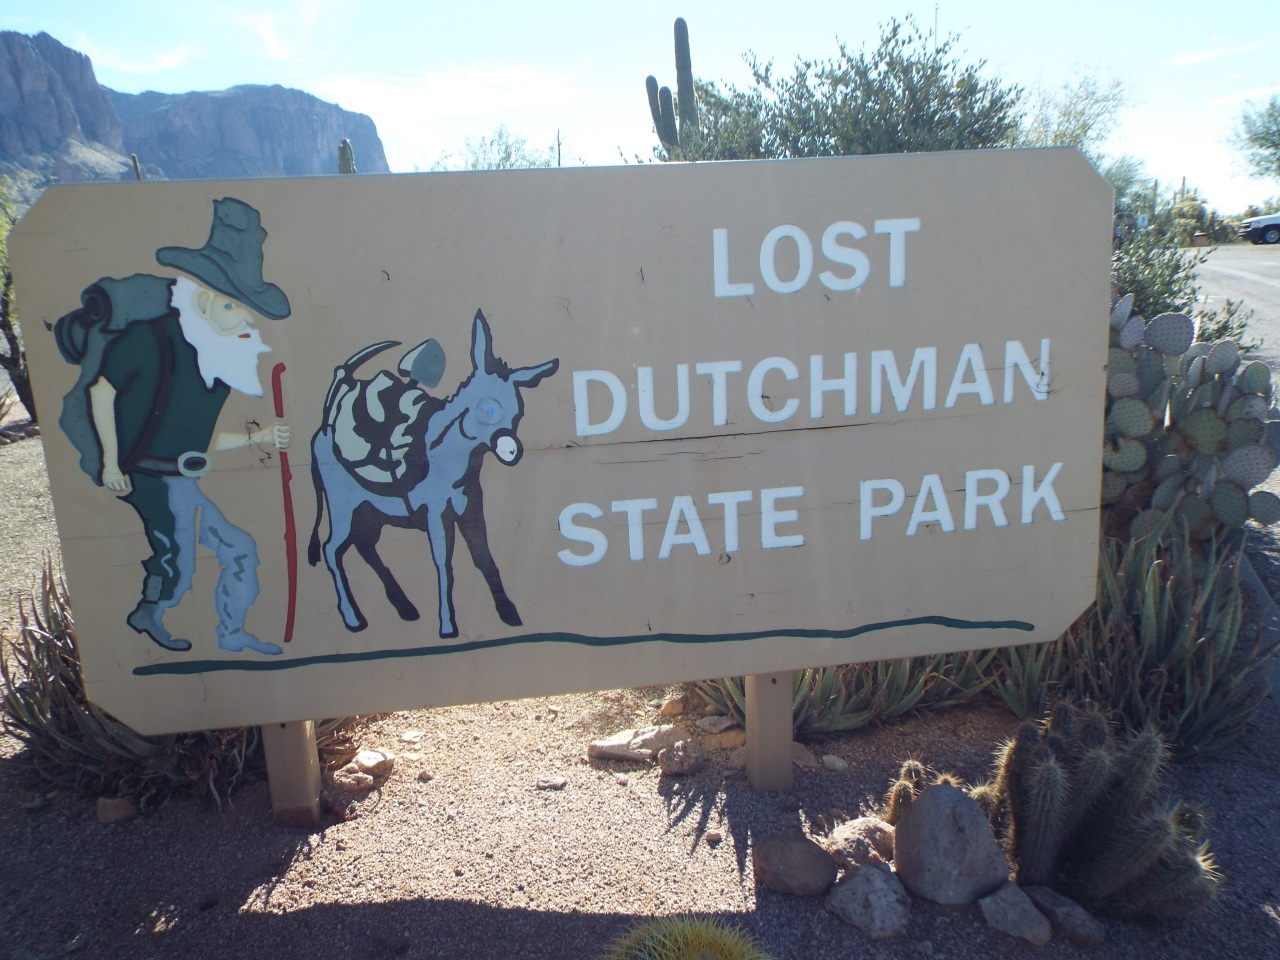 Apache_Junction-Lost_Ducthman_State_Park